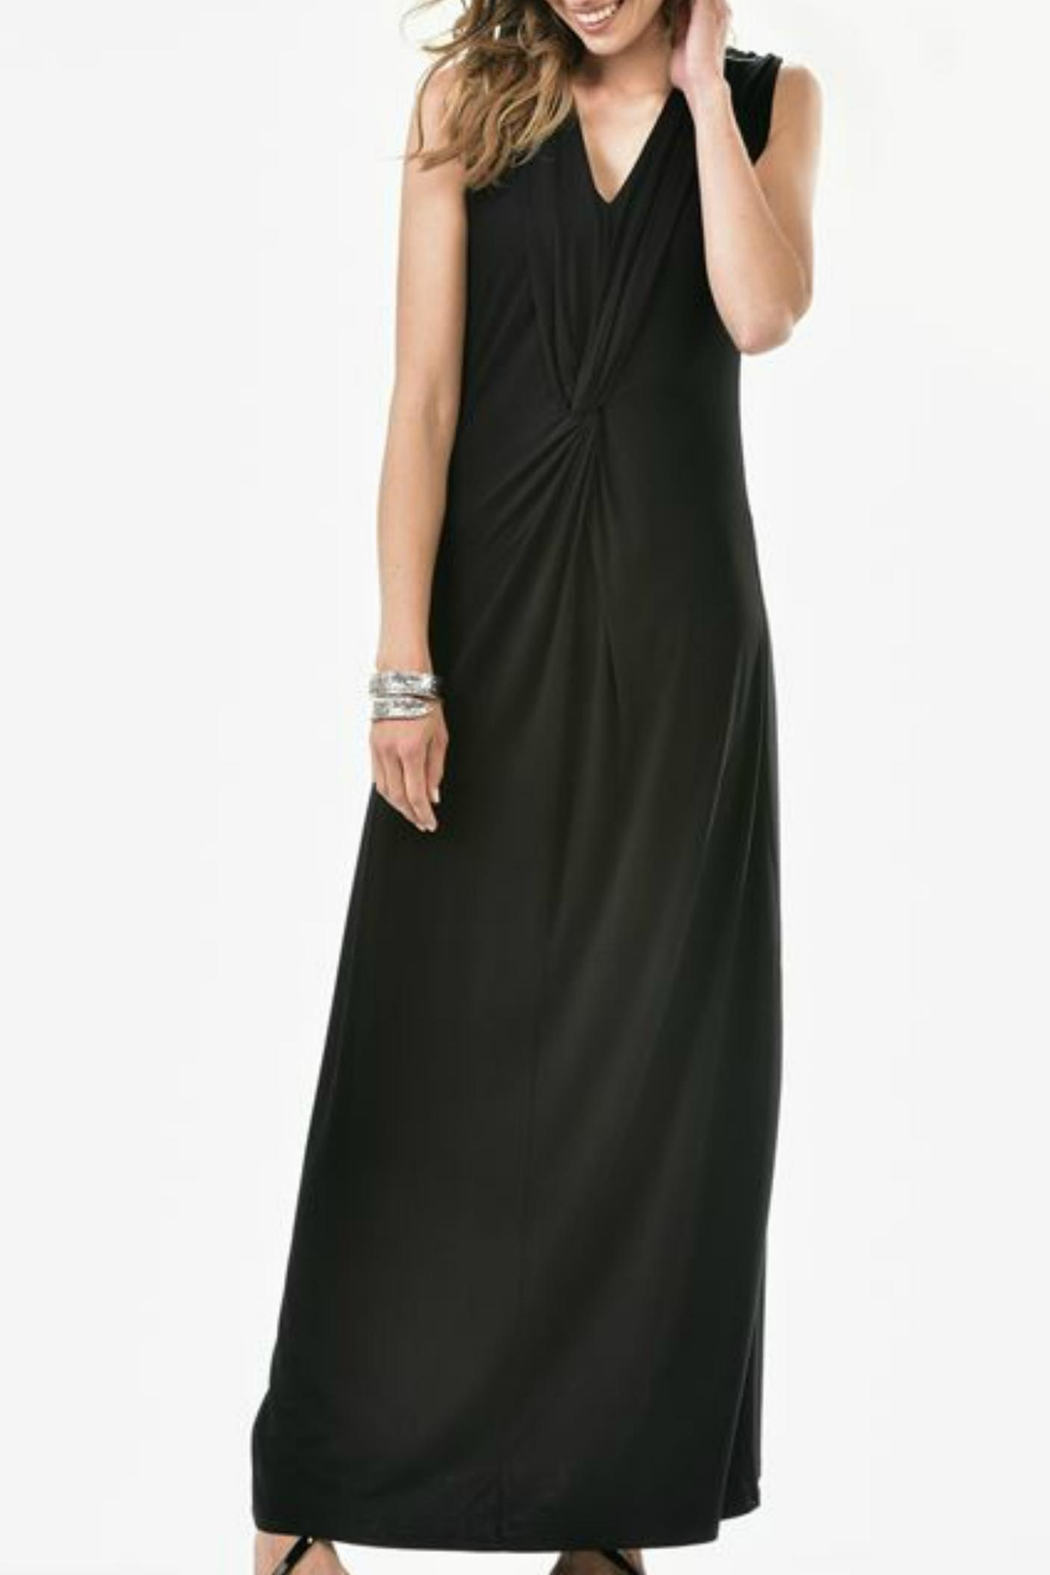 Charlie Paige Knotted Maxi Dress - Main Image